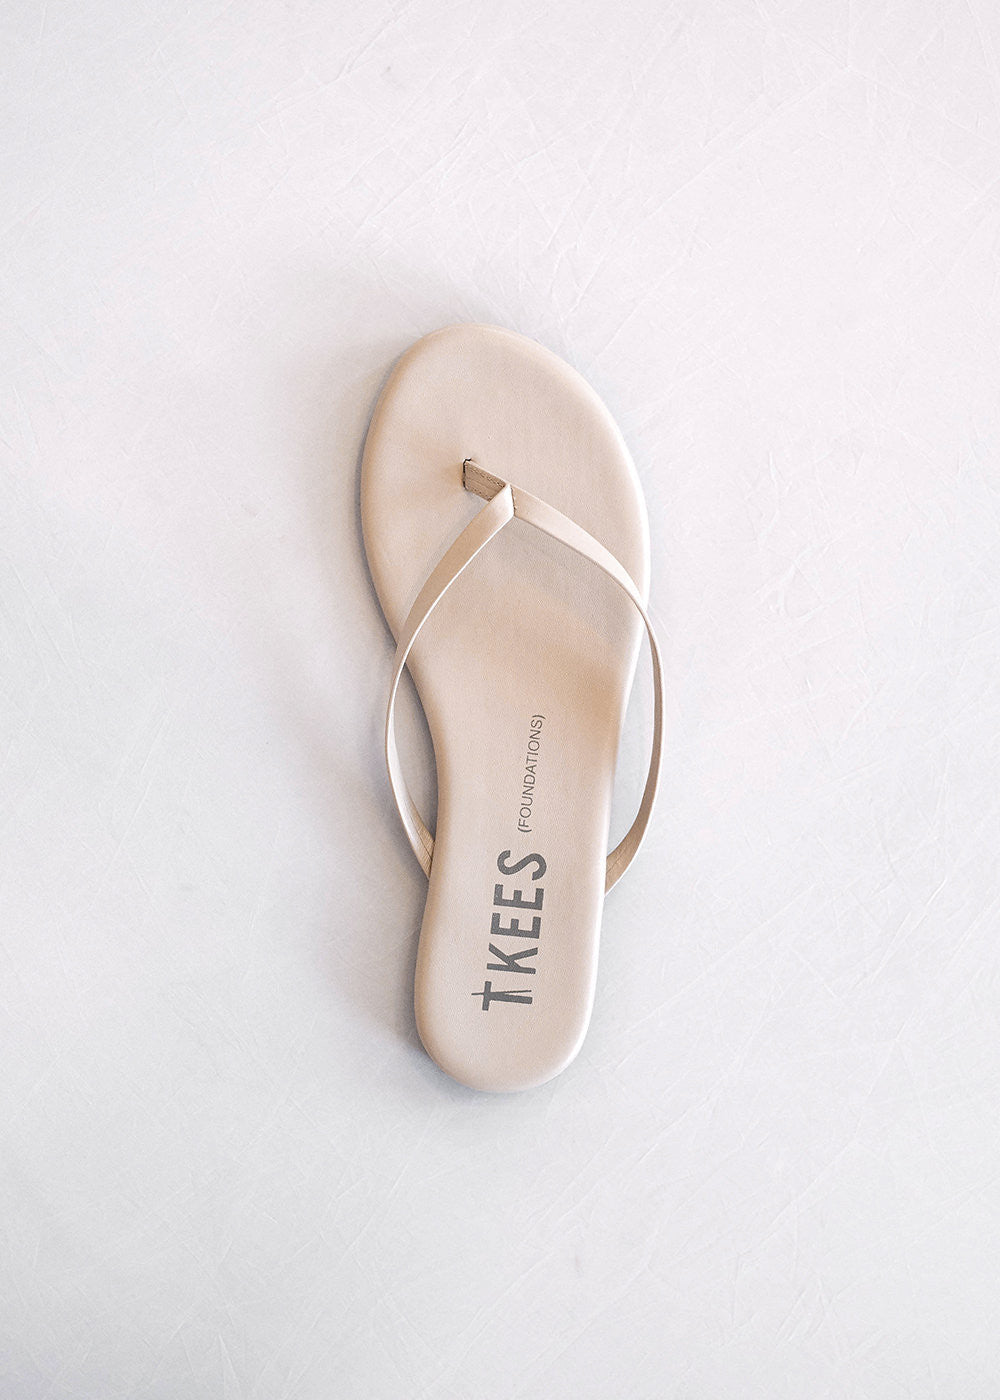 TKEES Flip Flop Foundations in Sunkissed - Tula Boutique